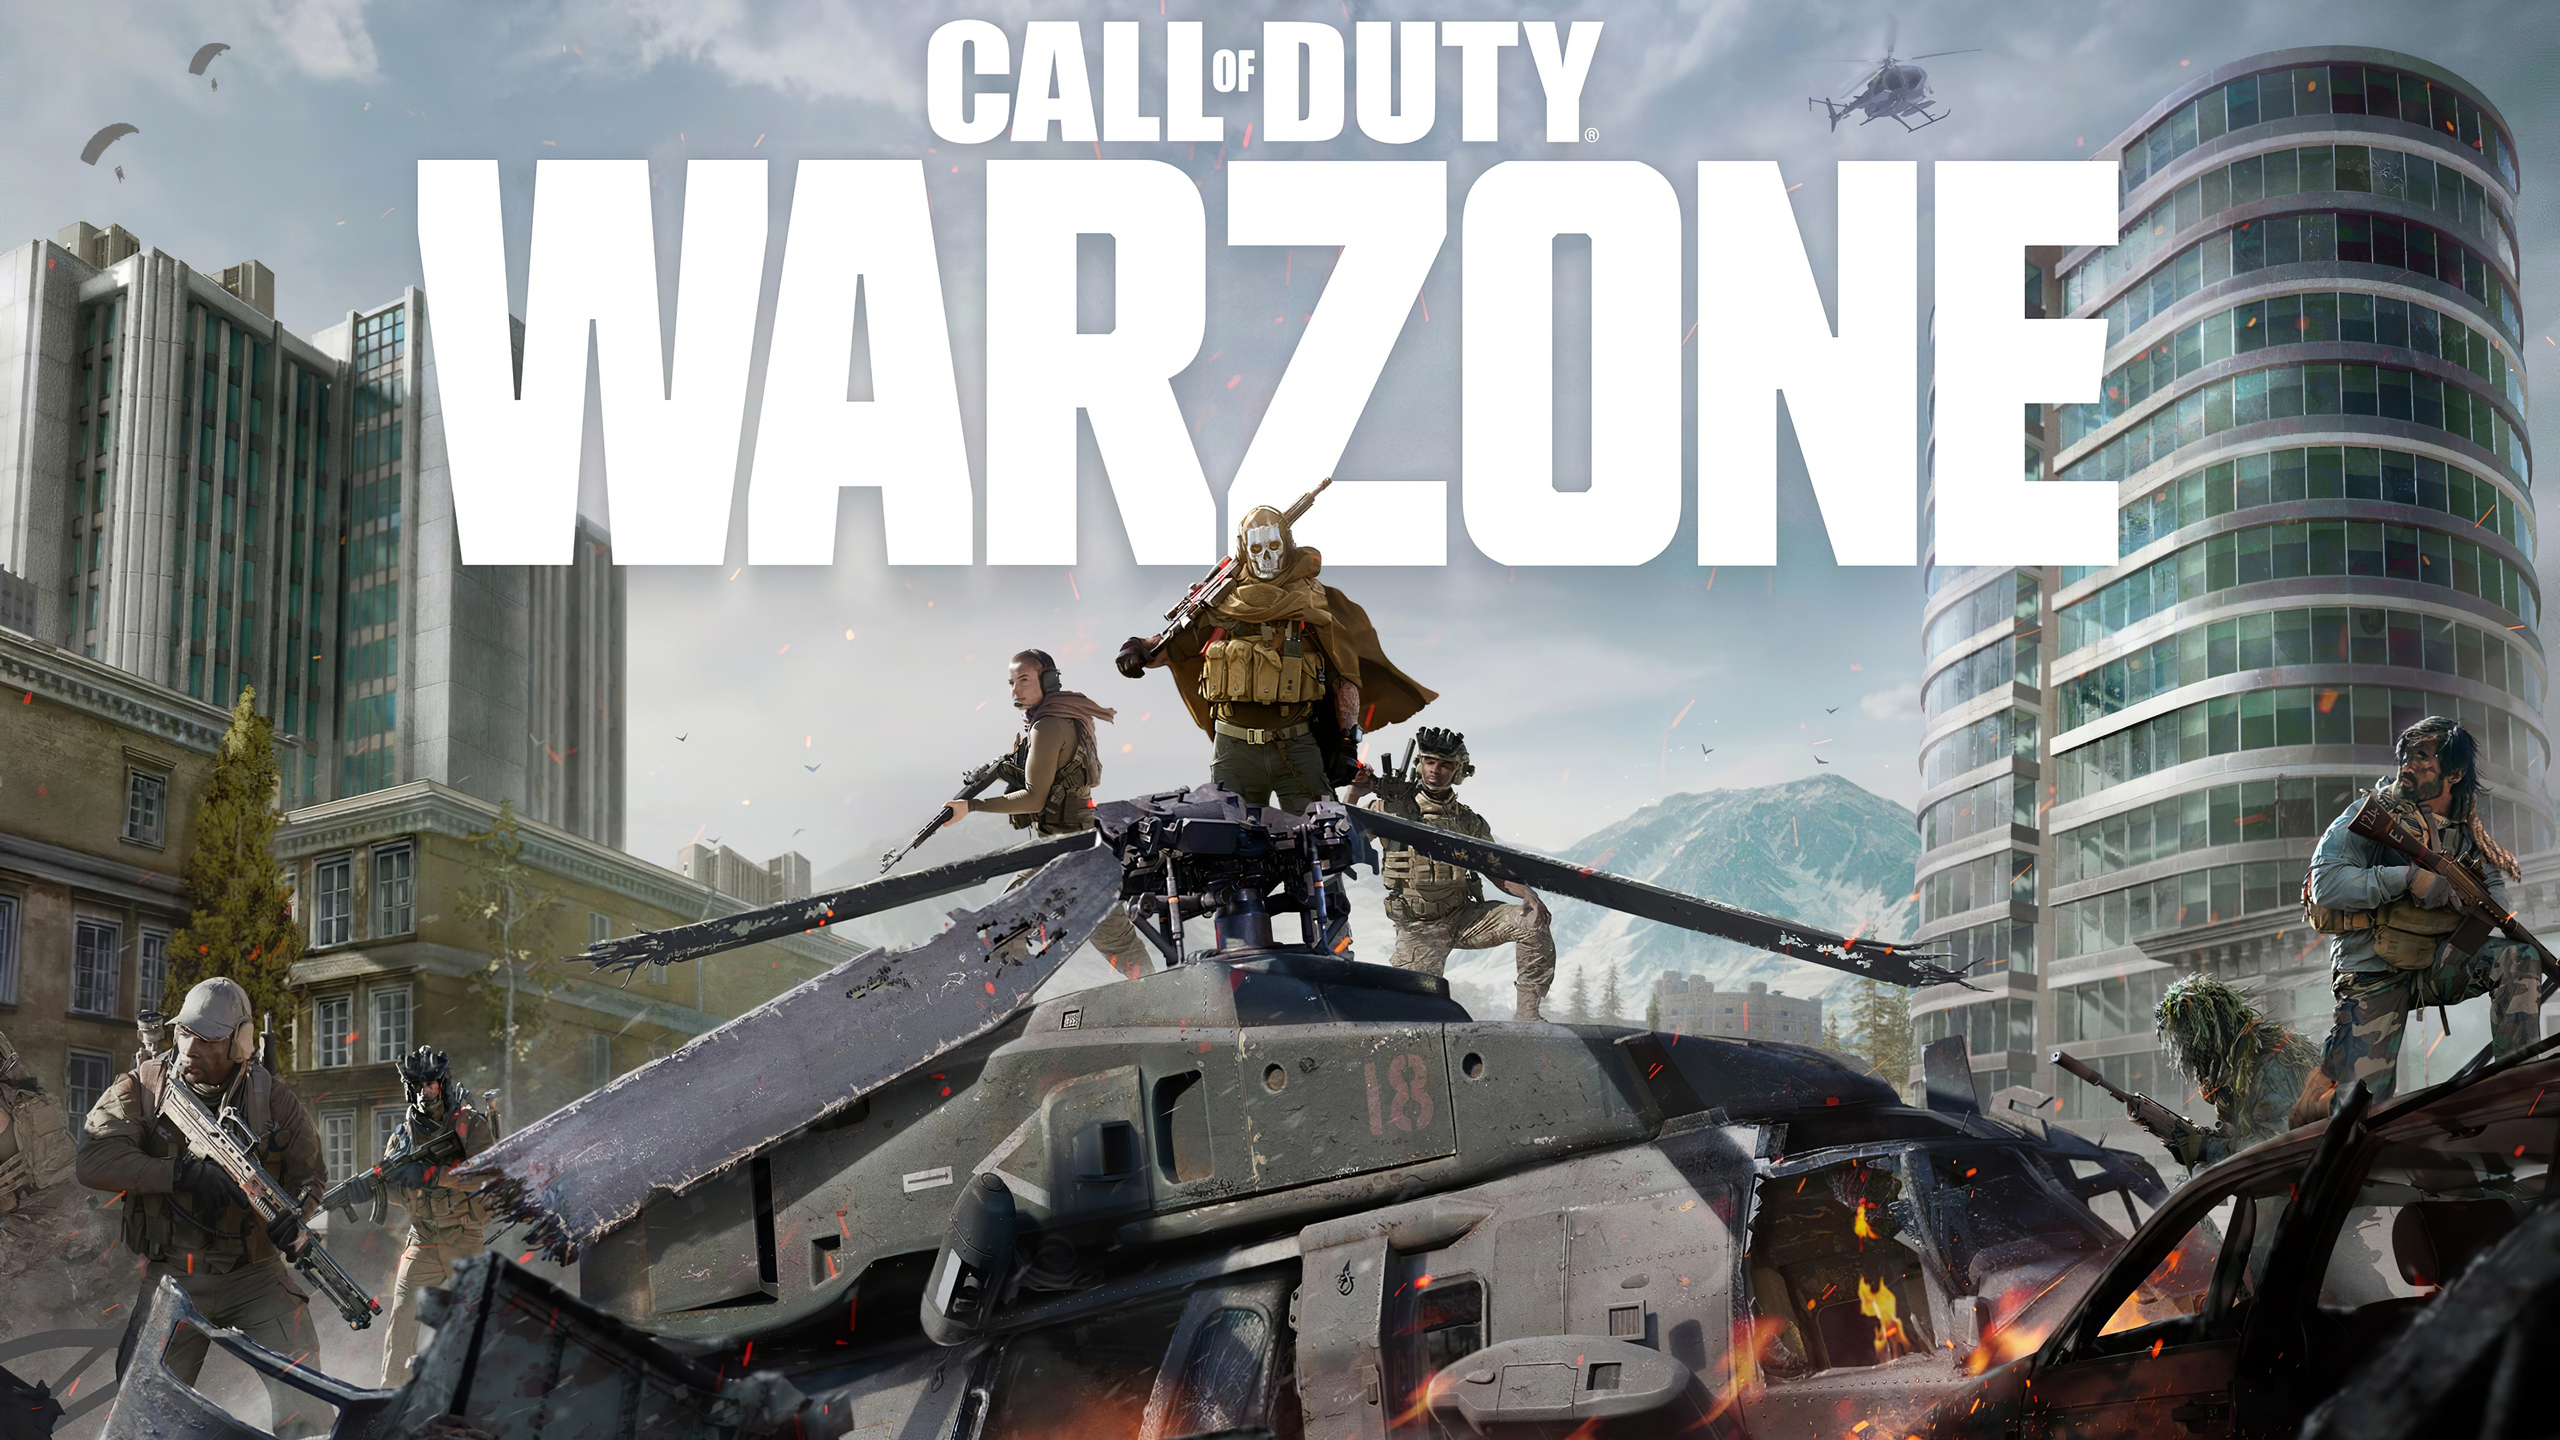 2560x1440 Call Of Duty Warzone 1440p Resolution Hd 4k Wallpapers